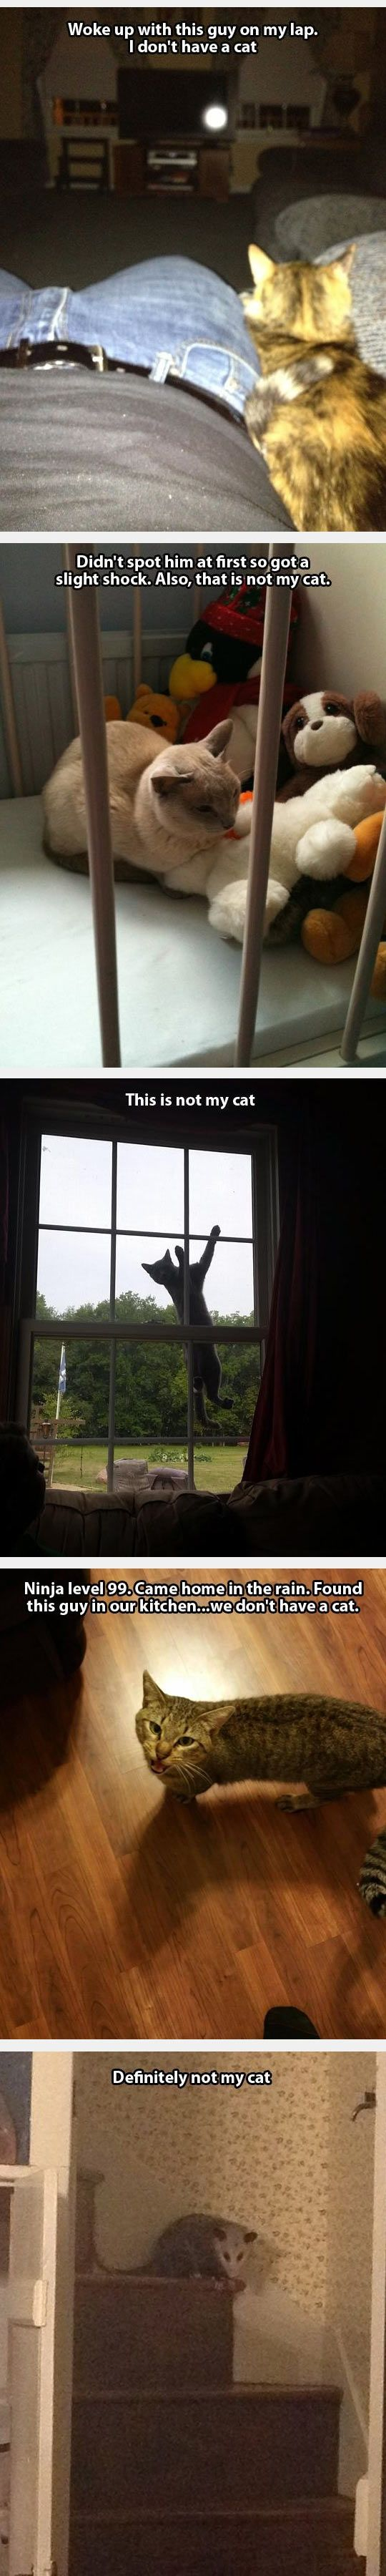 Not my cat!!